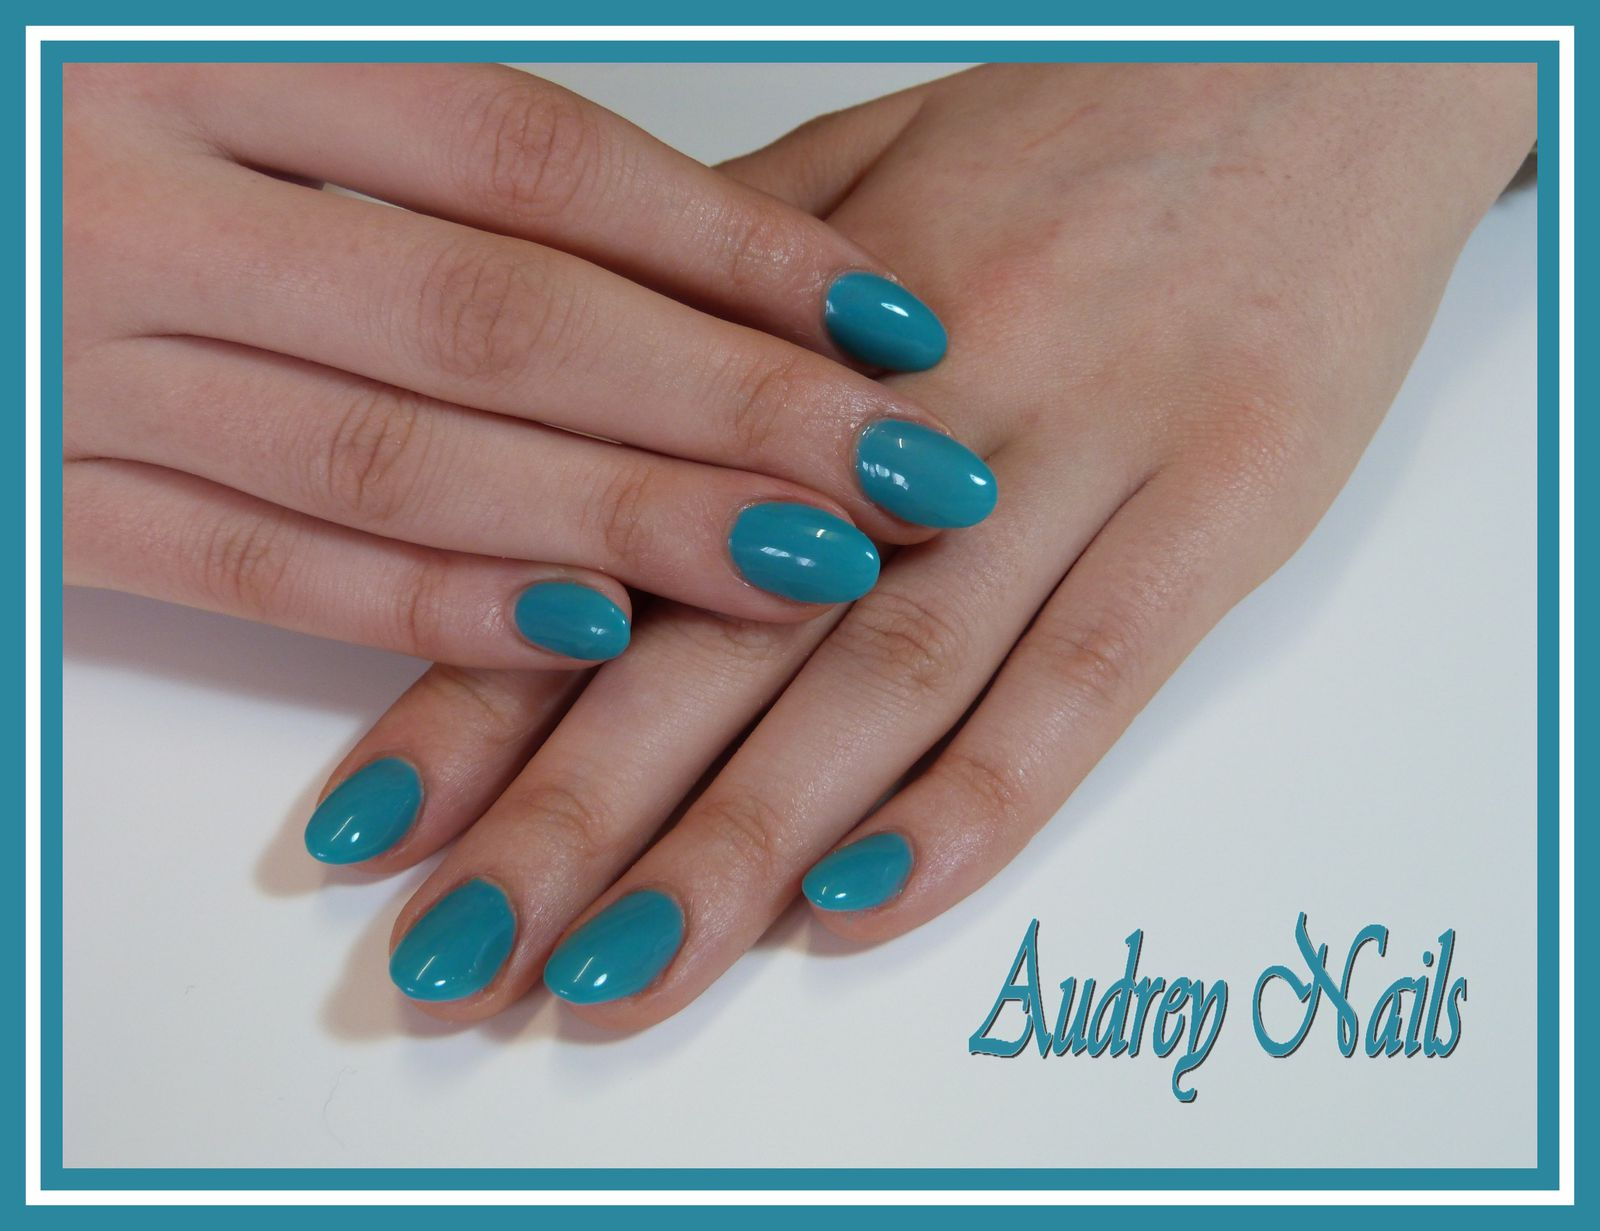 gel de couleur bleu turquoise institut de beaut audrey nails 91. Black Bedroom Furniture Sets. Home Design Ideas